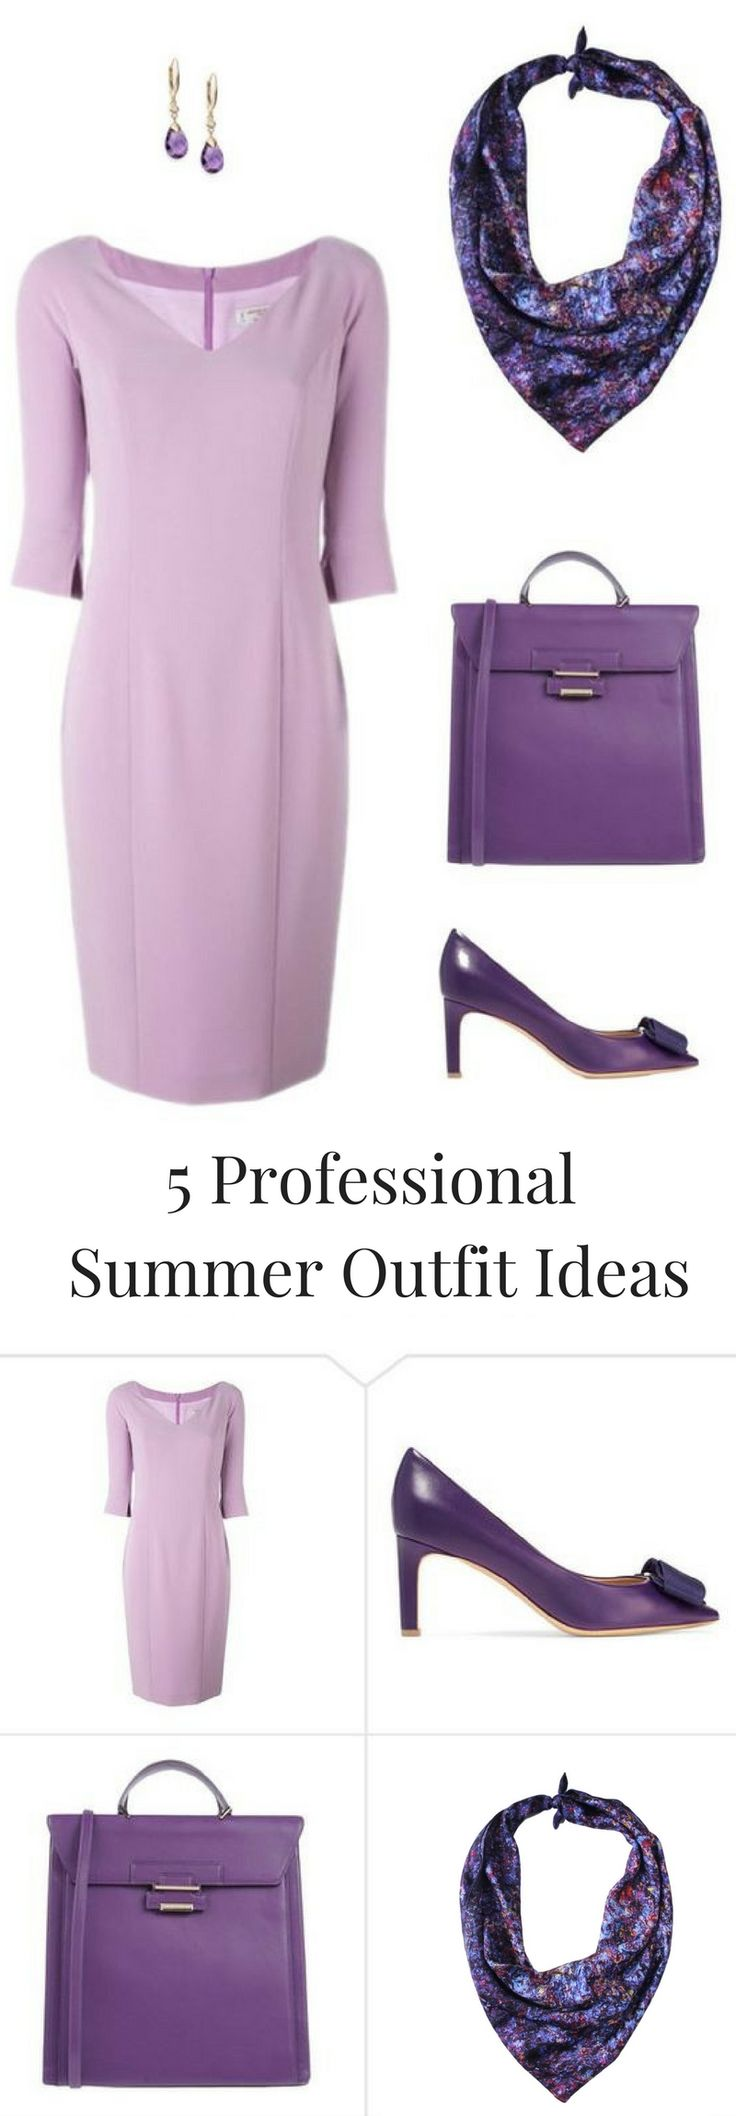 Lavender and Lilac - beautiful shades of purple in this summer professional outfit idea featuring Alberto Biani Lilac Dress and Aithne Vibrations of Blue Silk Scarf. Click through to the blog post for more summer professional style ideas.